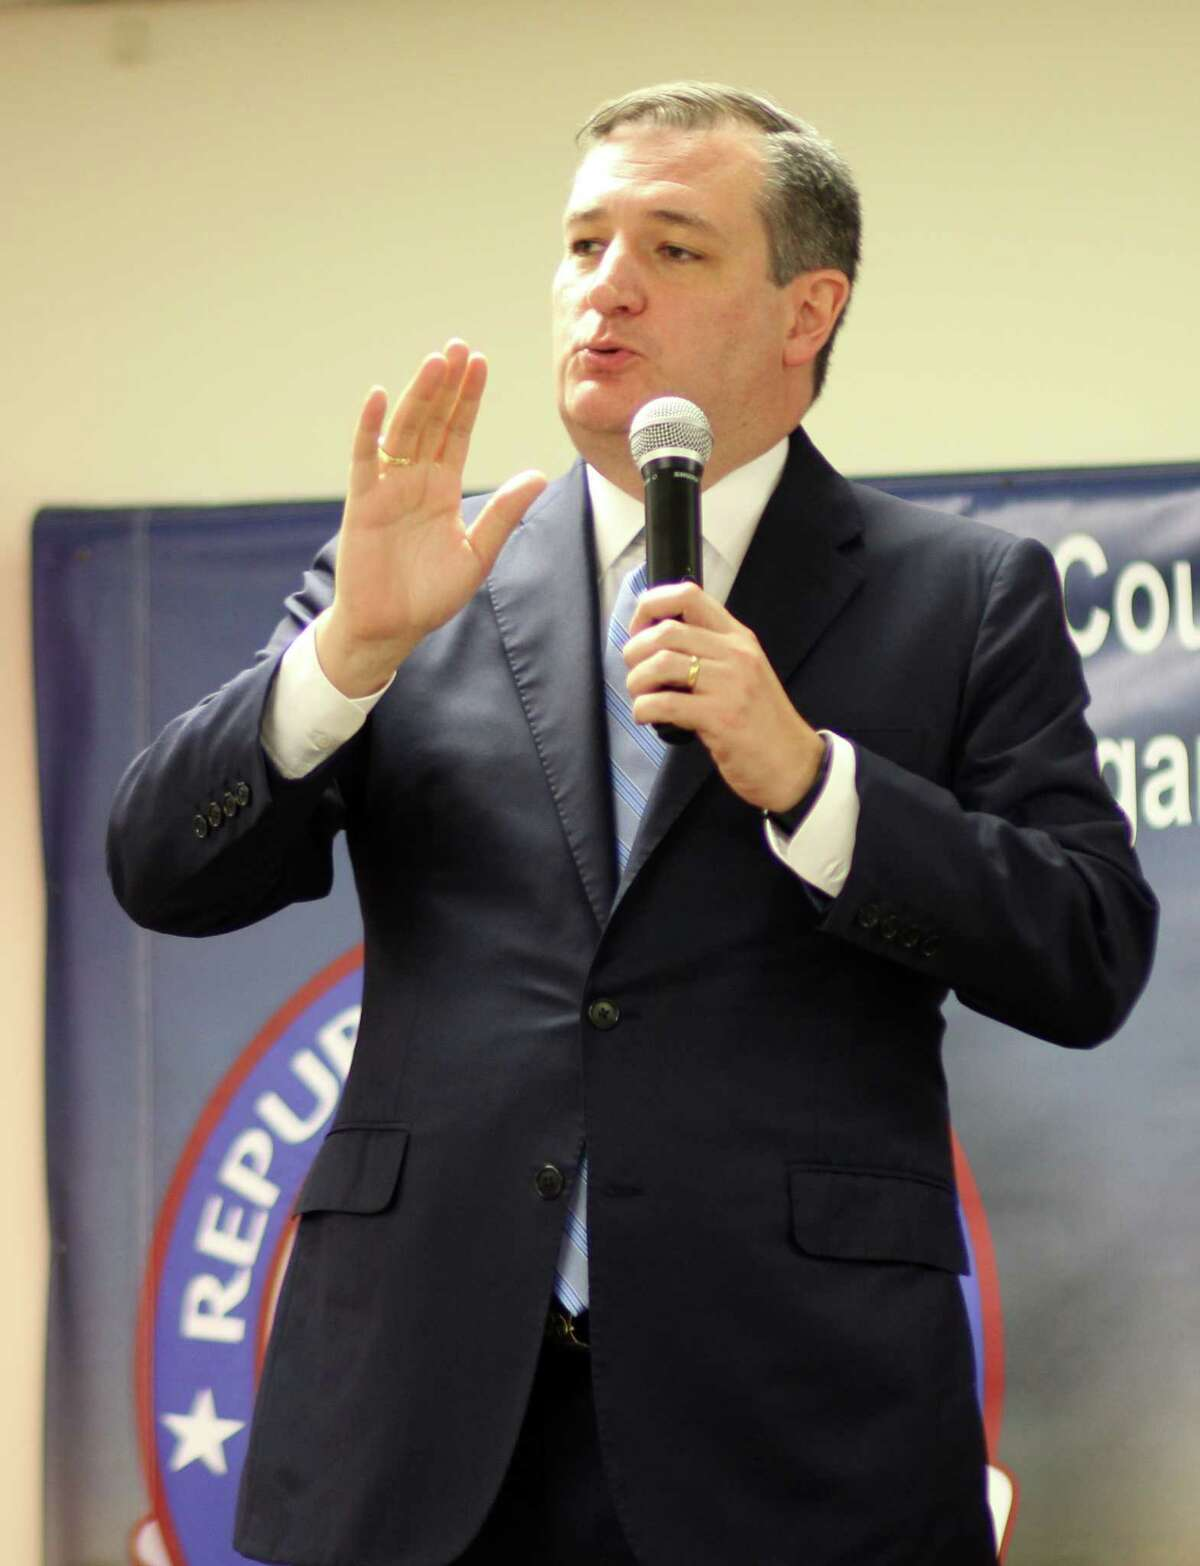 """U.S. Senator Ted Cruz isn't particularly popular with some of his Senate colleagues. U.S. Sen. Al Franken, D-Minn., even dedicated an entire chapter of his new book """"Giant of the Senate"""" to how much he dislikes Cruz."""